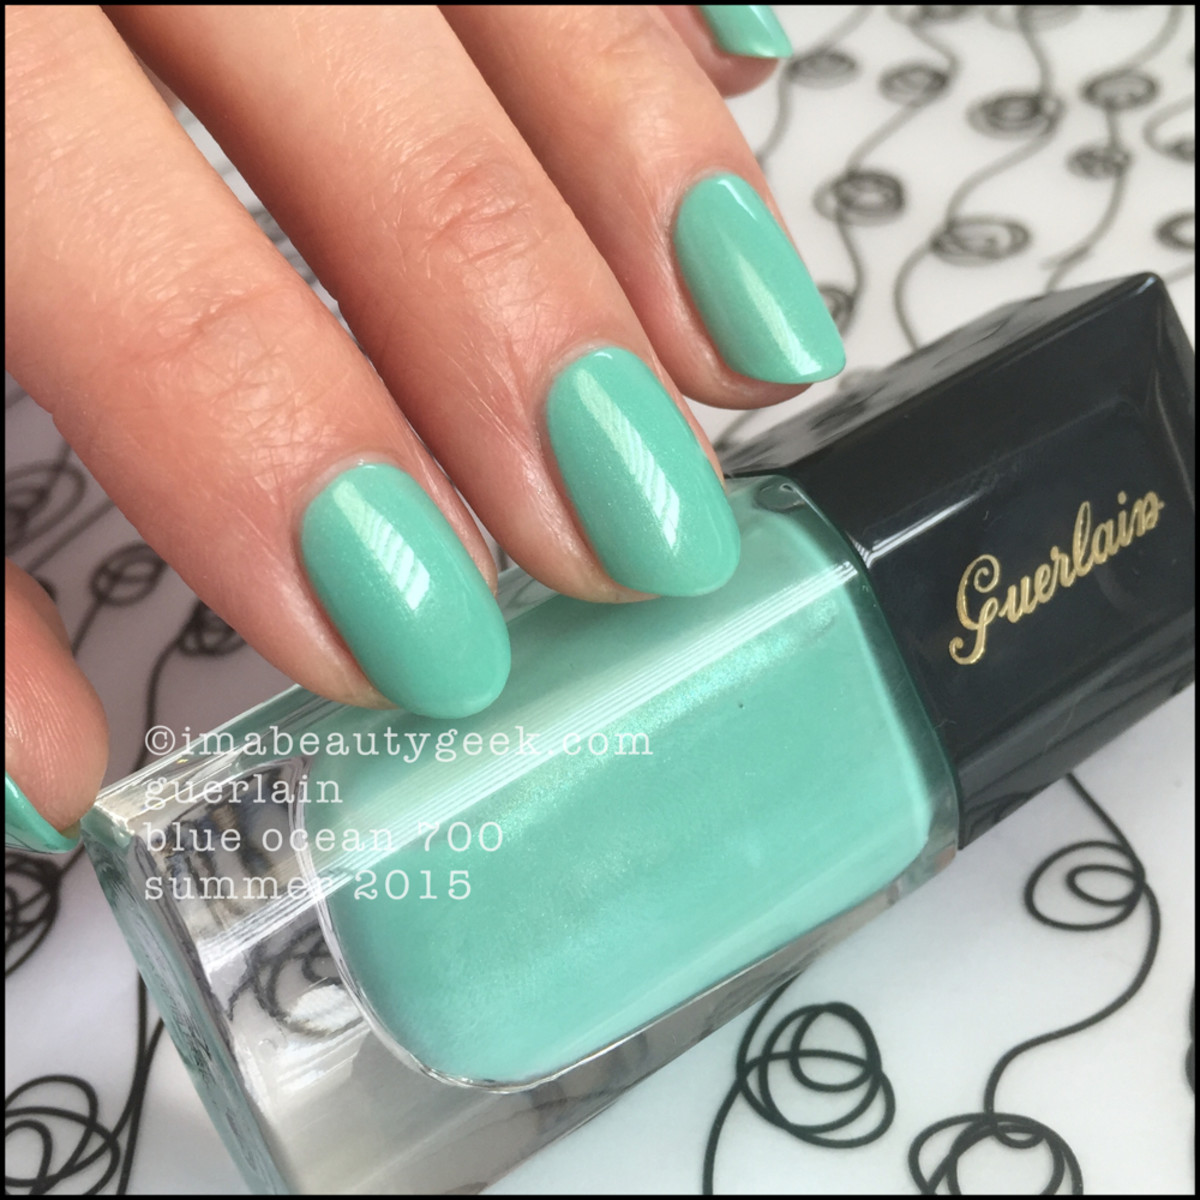 Guerlain Blue Ocean Nail Polish Swatch two coats